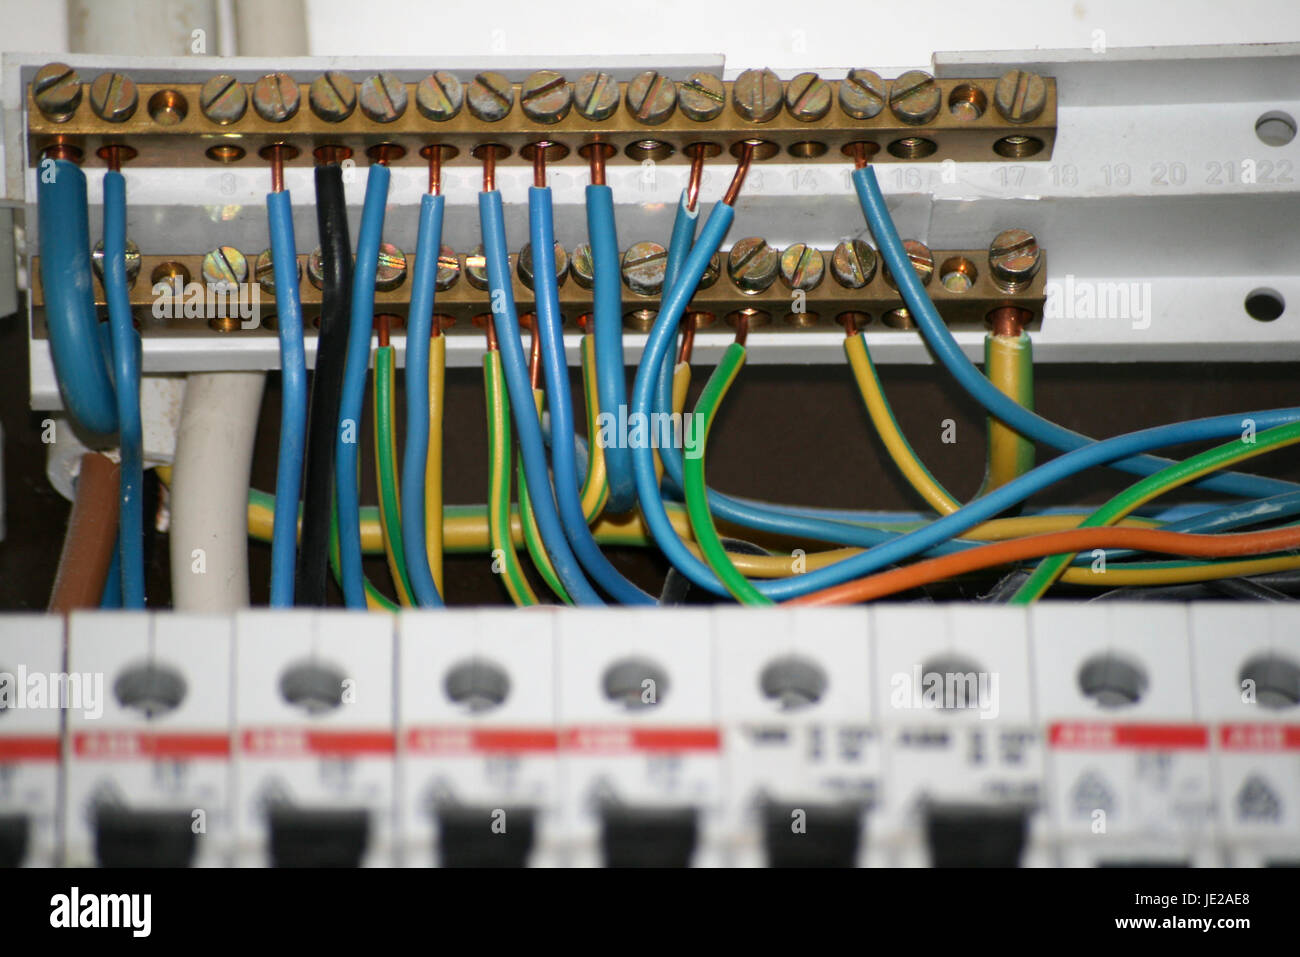 hight resolution of wires of an old switch box stock image